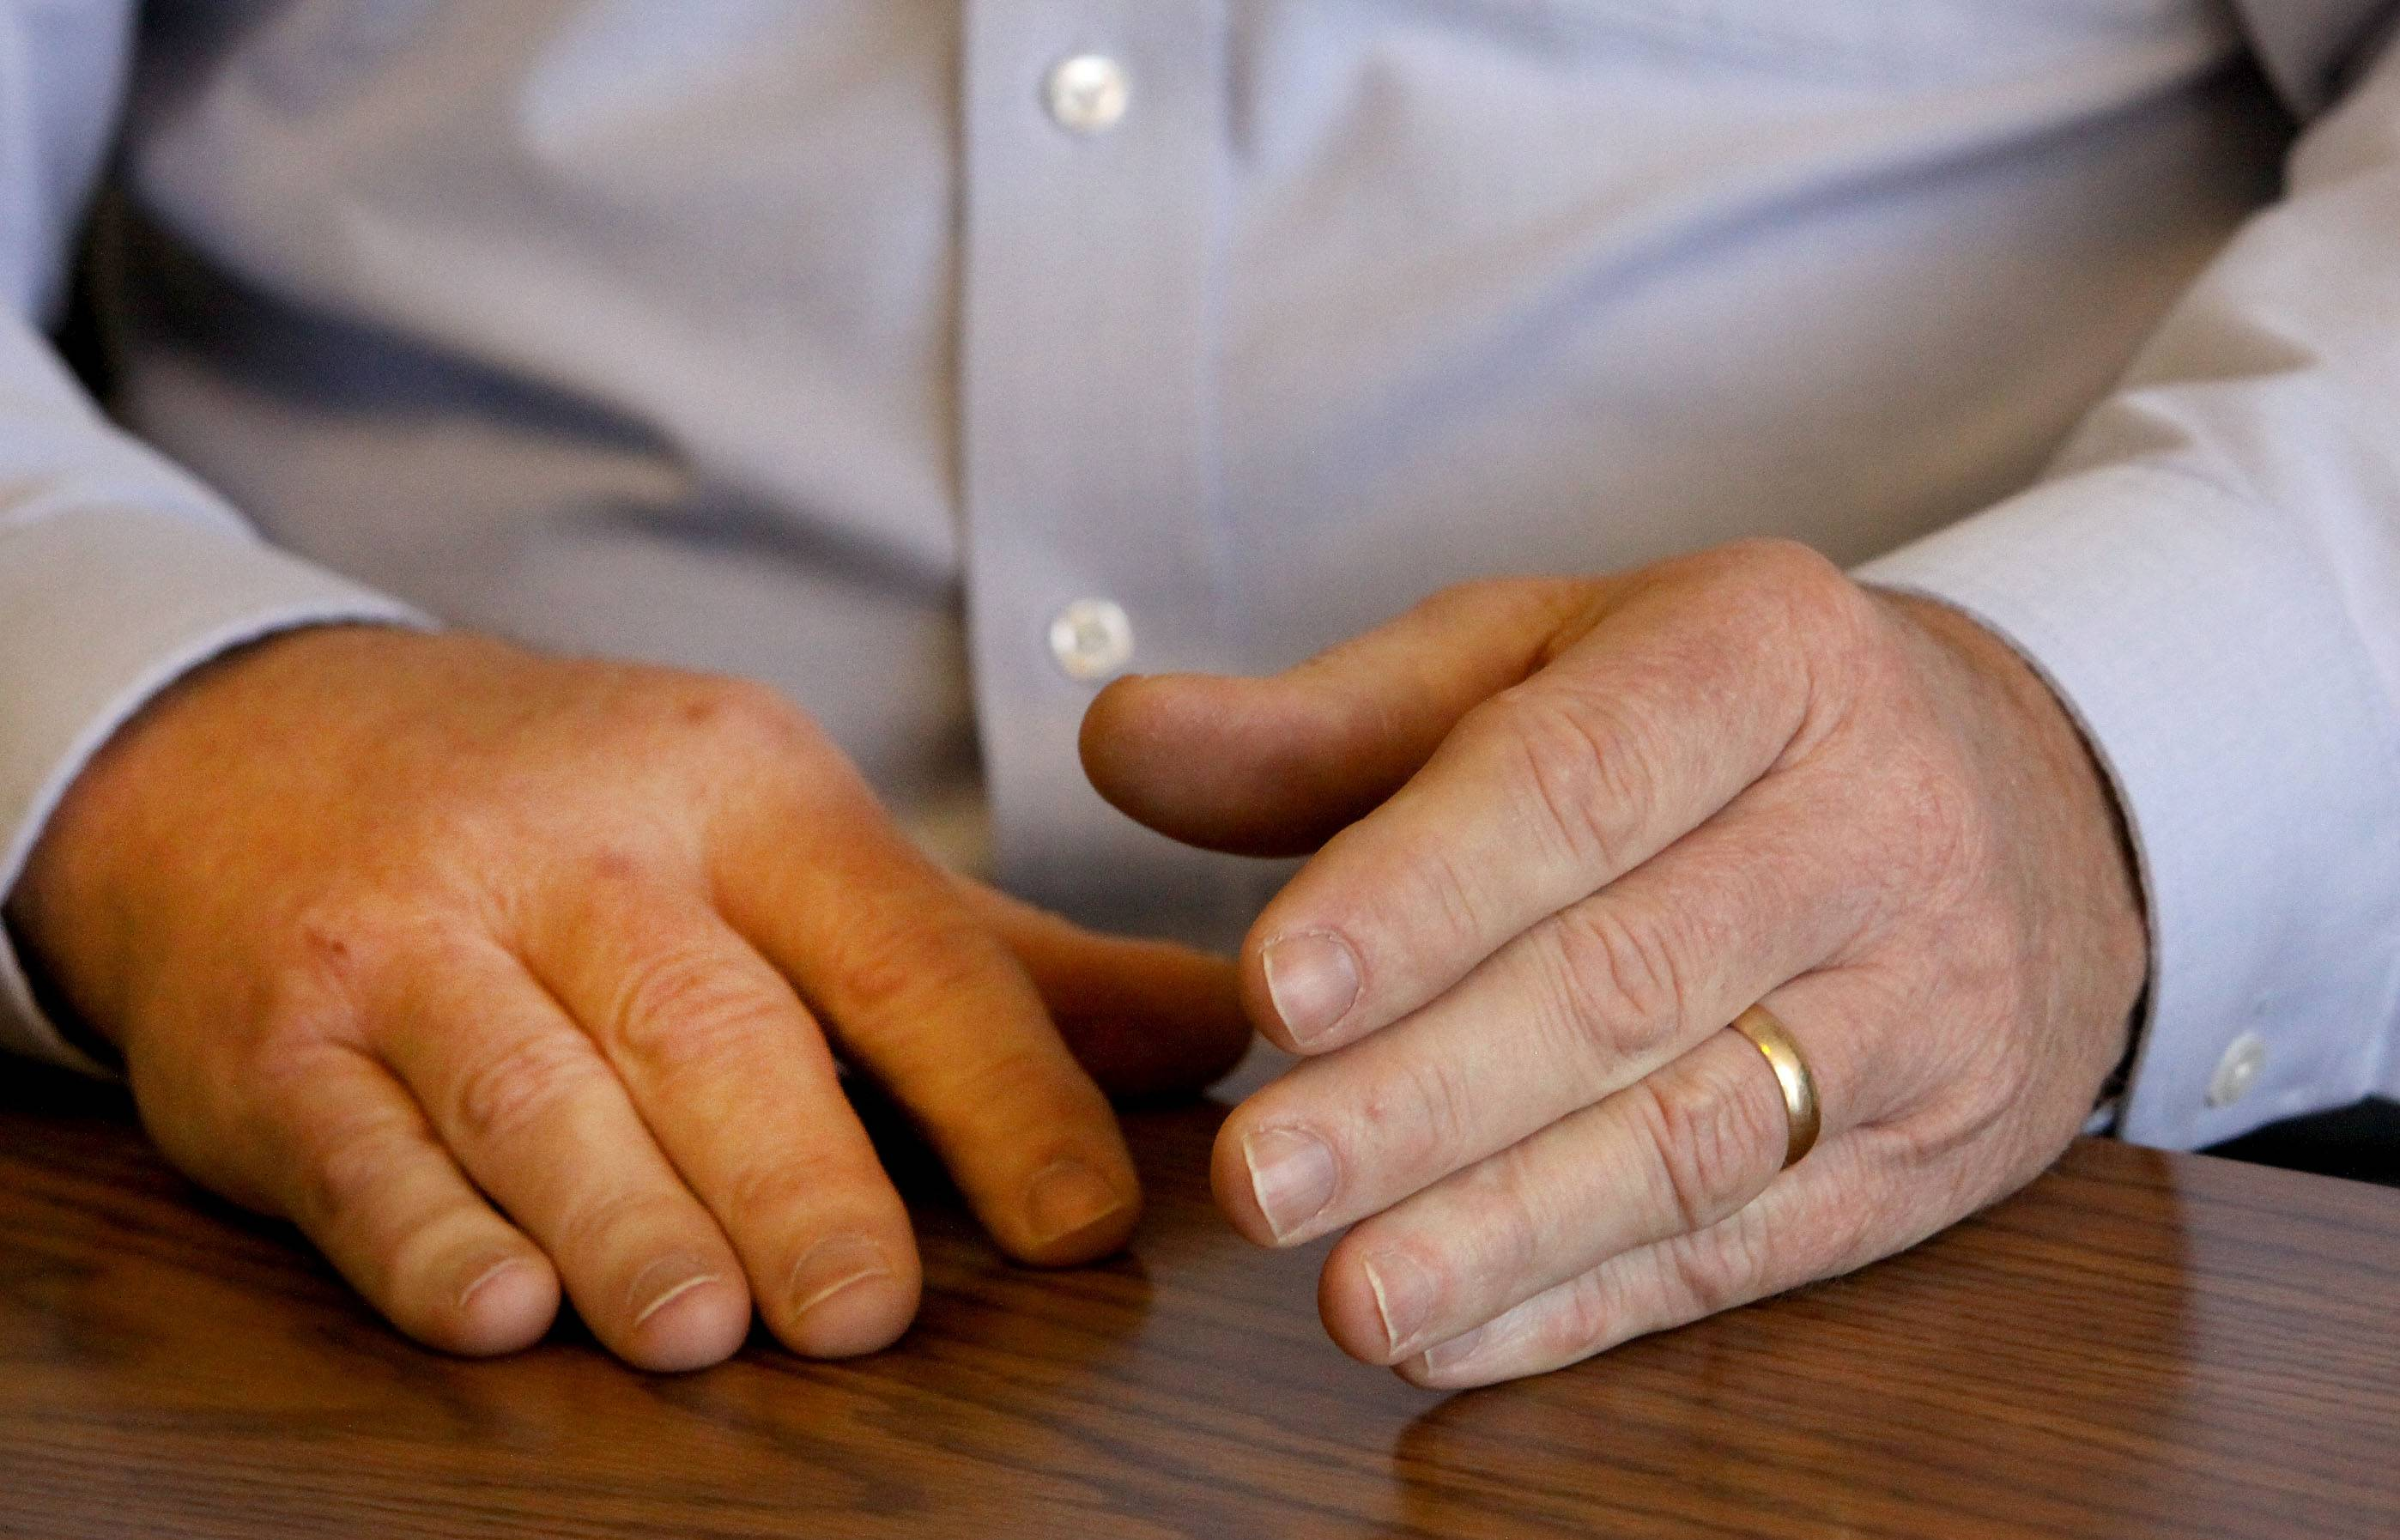 Tight wedding ring other subtle changes pointed to tumor